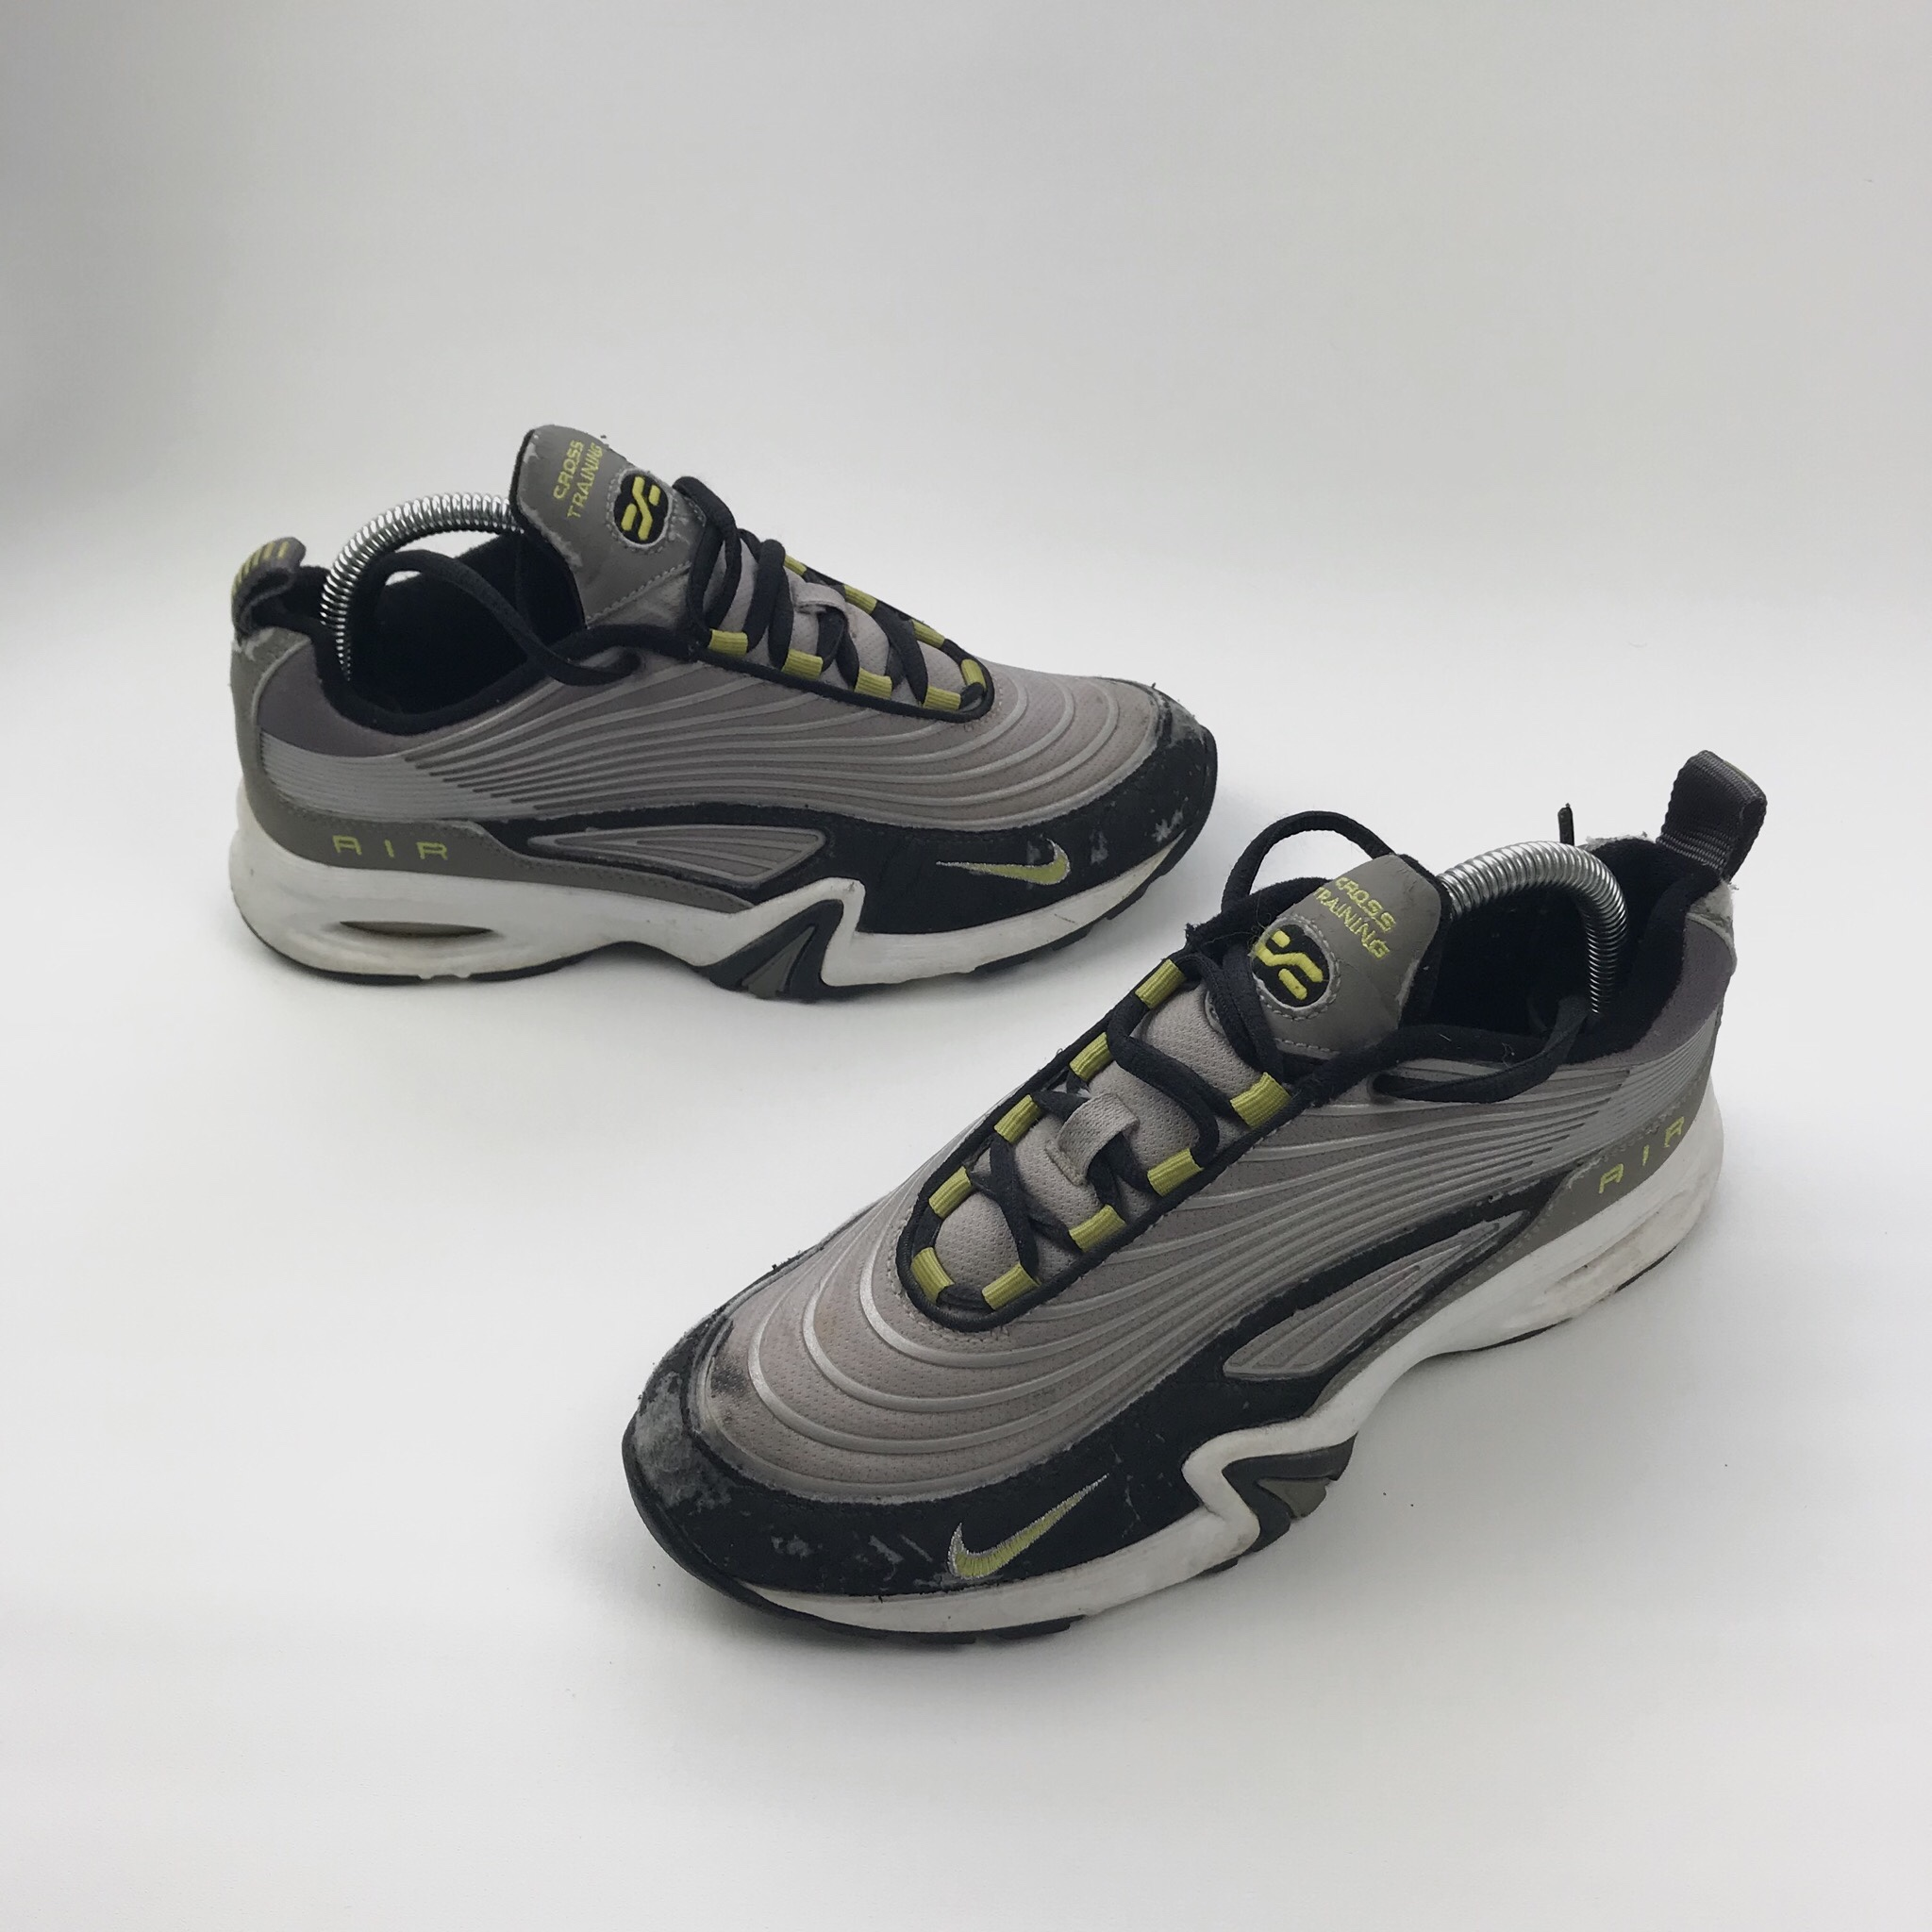 outlet store 3aa24 9b888 Nike Air Max Tailwind Hybrid 97's TL Size UK 5.5... - Depop